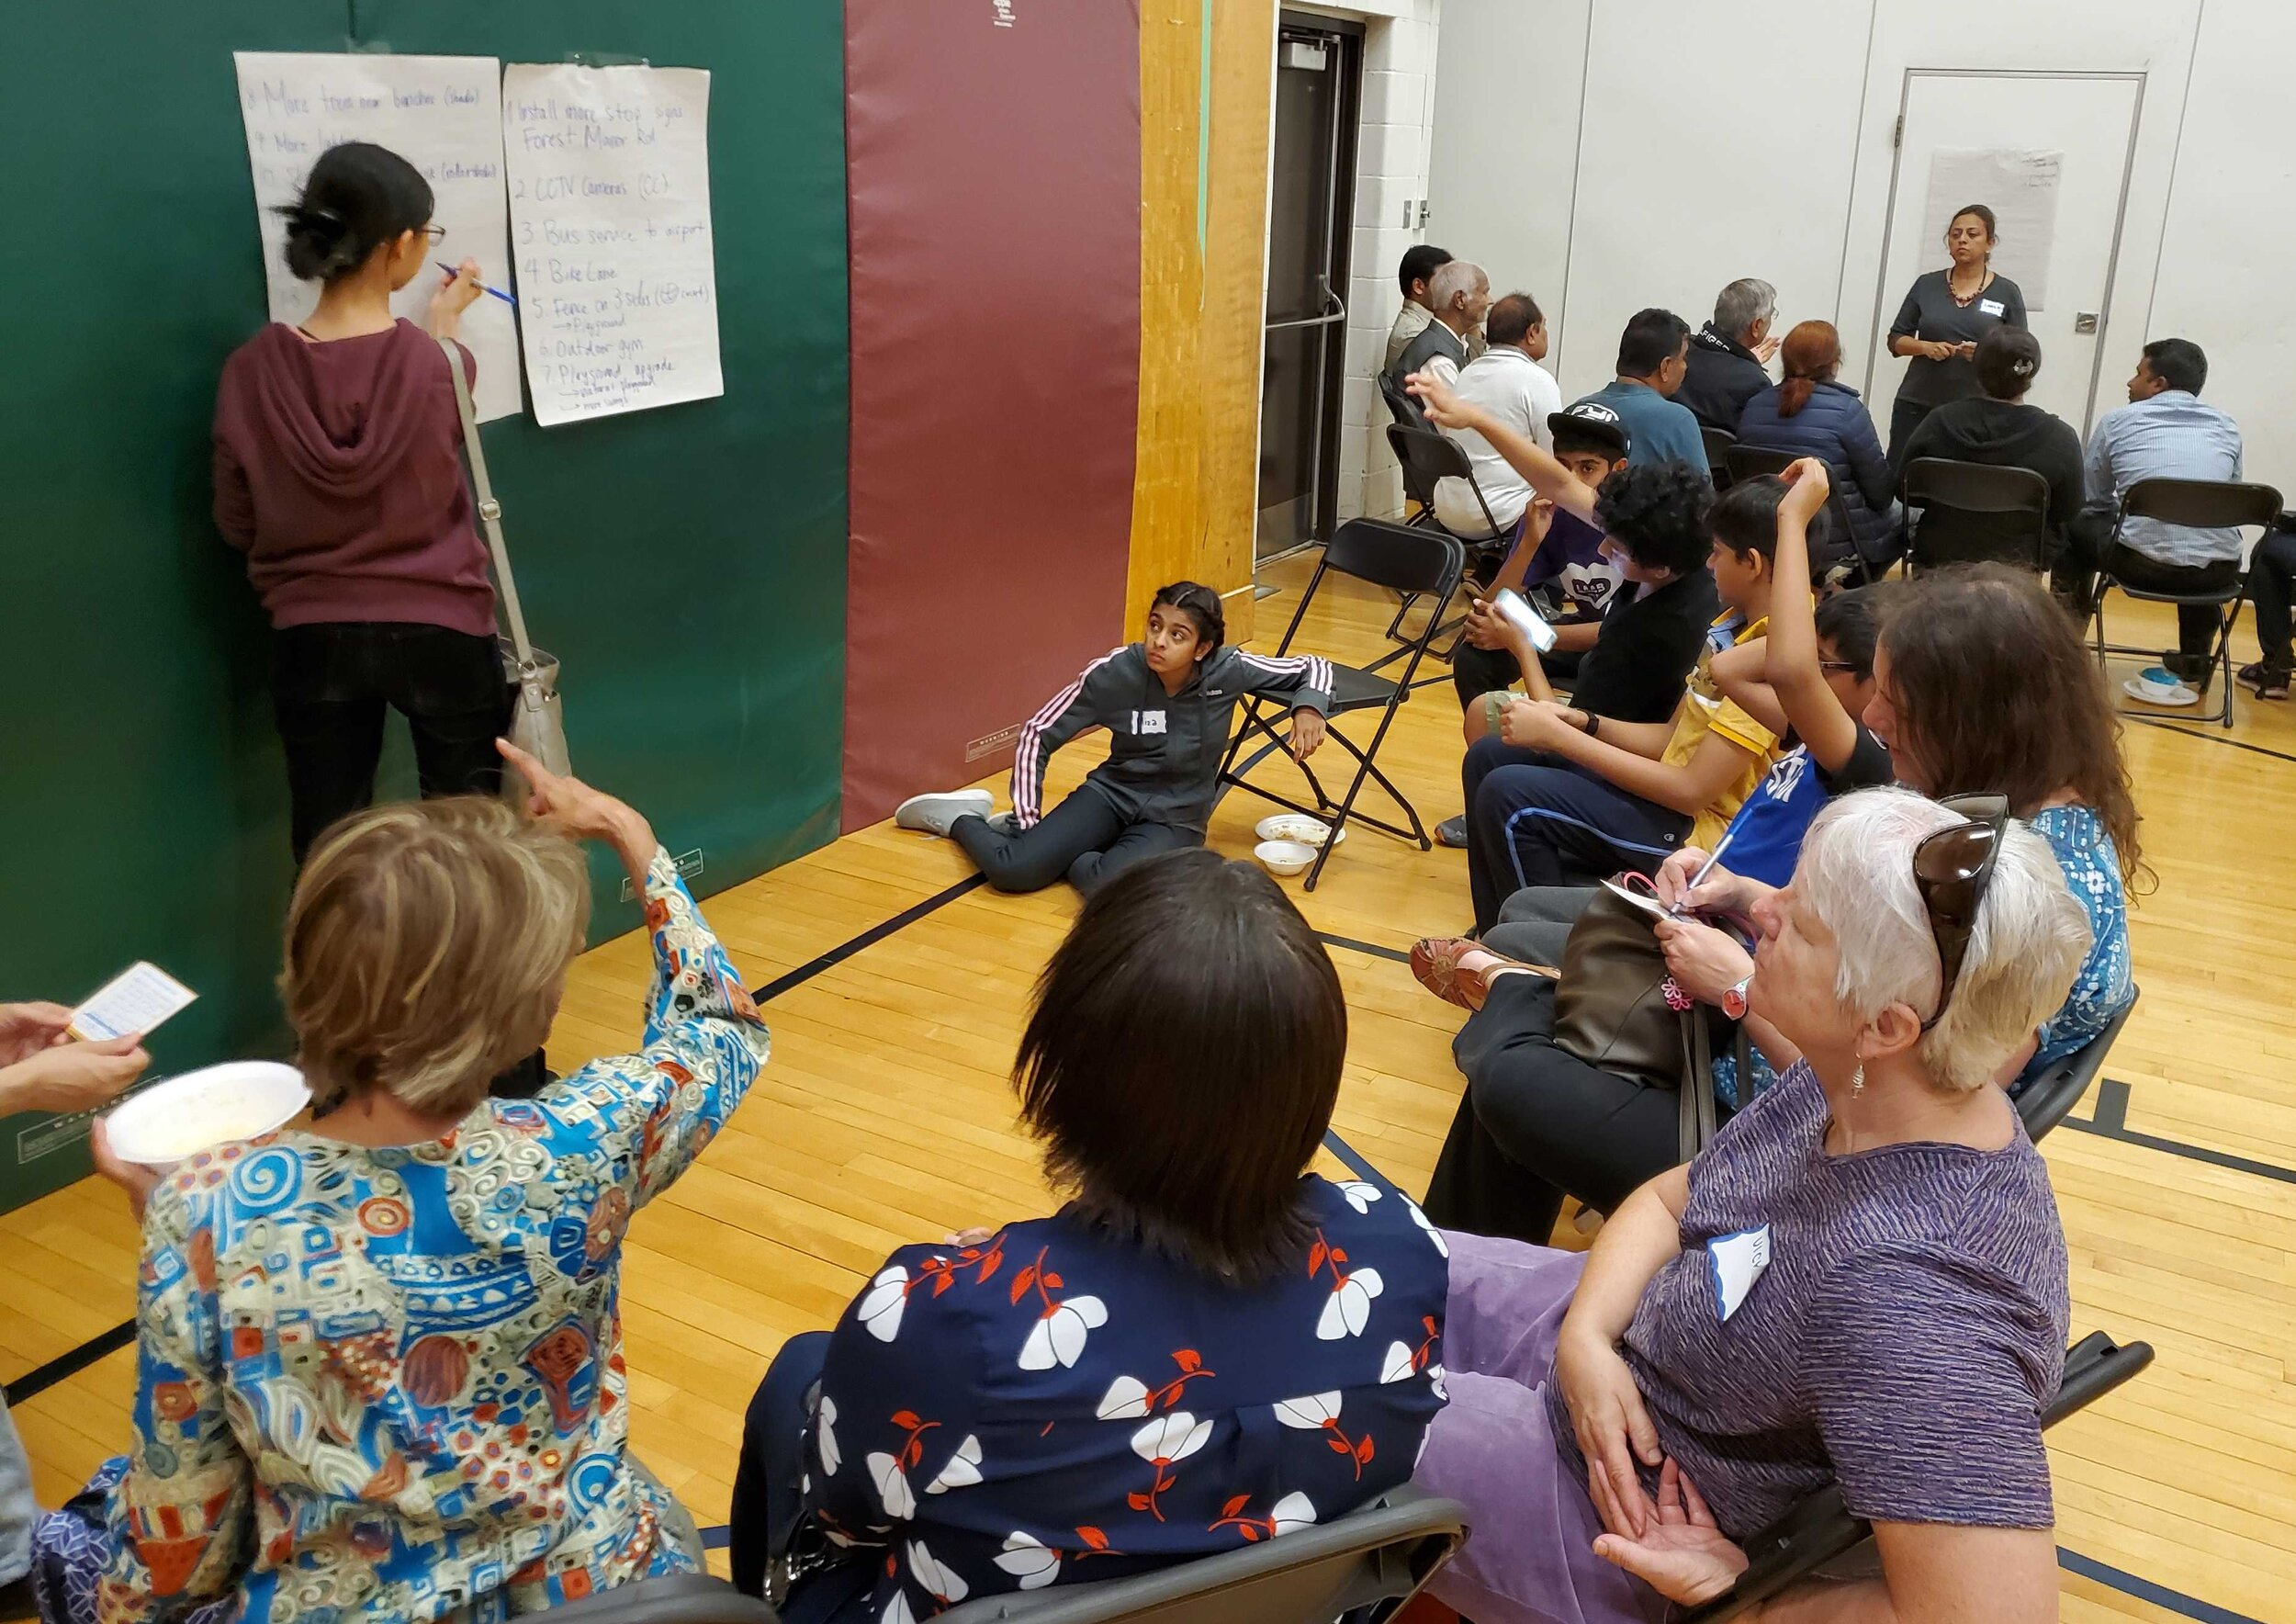 People of all ages and backgrounds submitted their ideas at our Idea Collection Meeting last month.